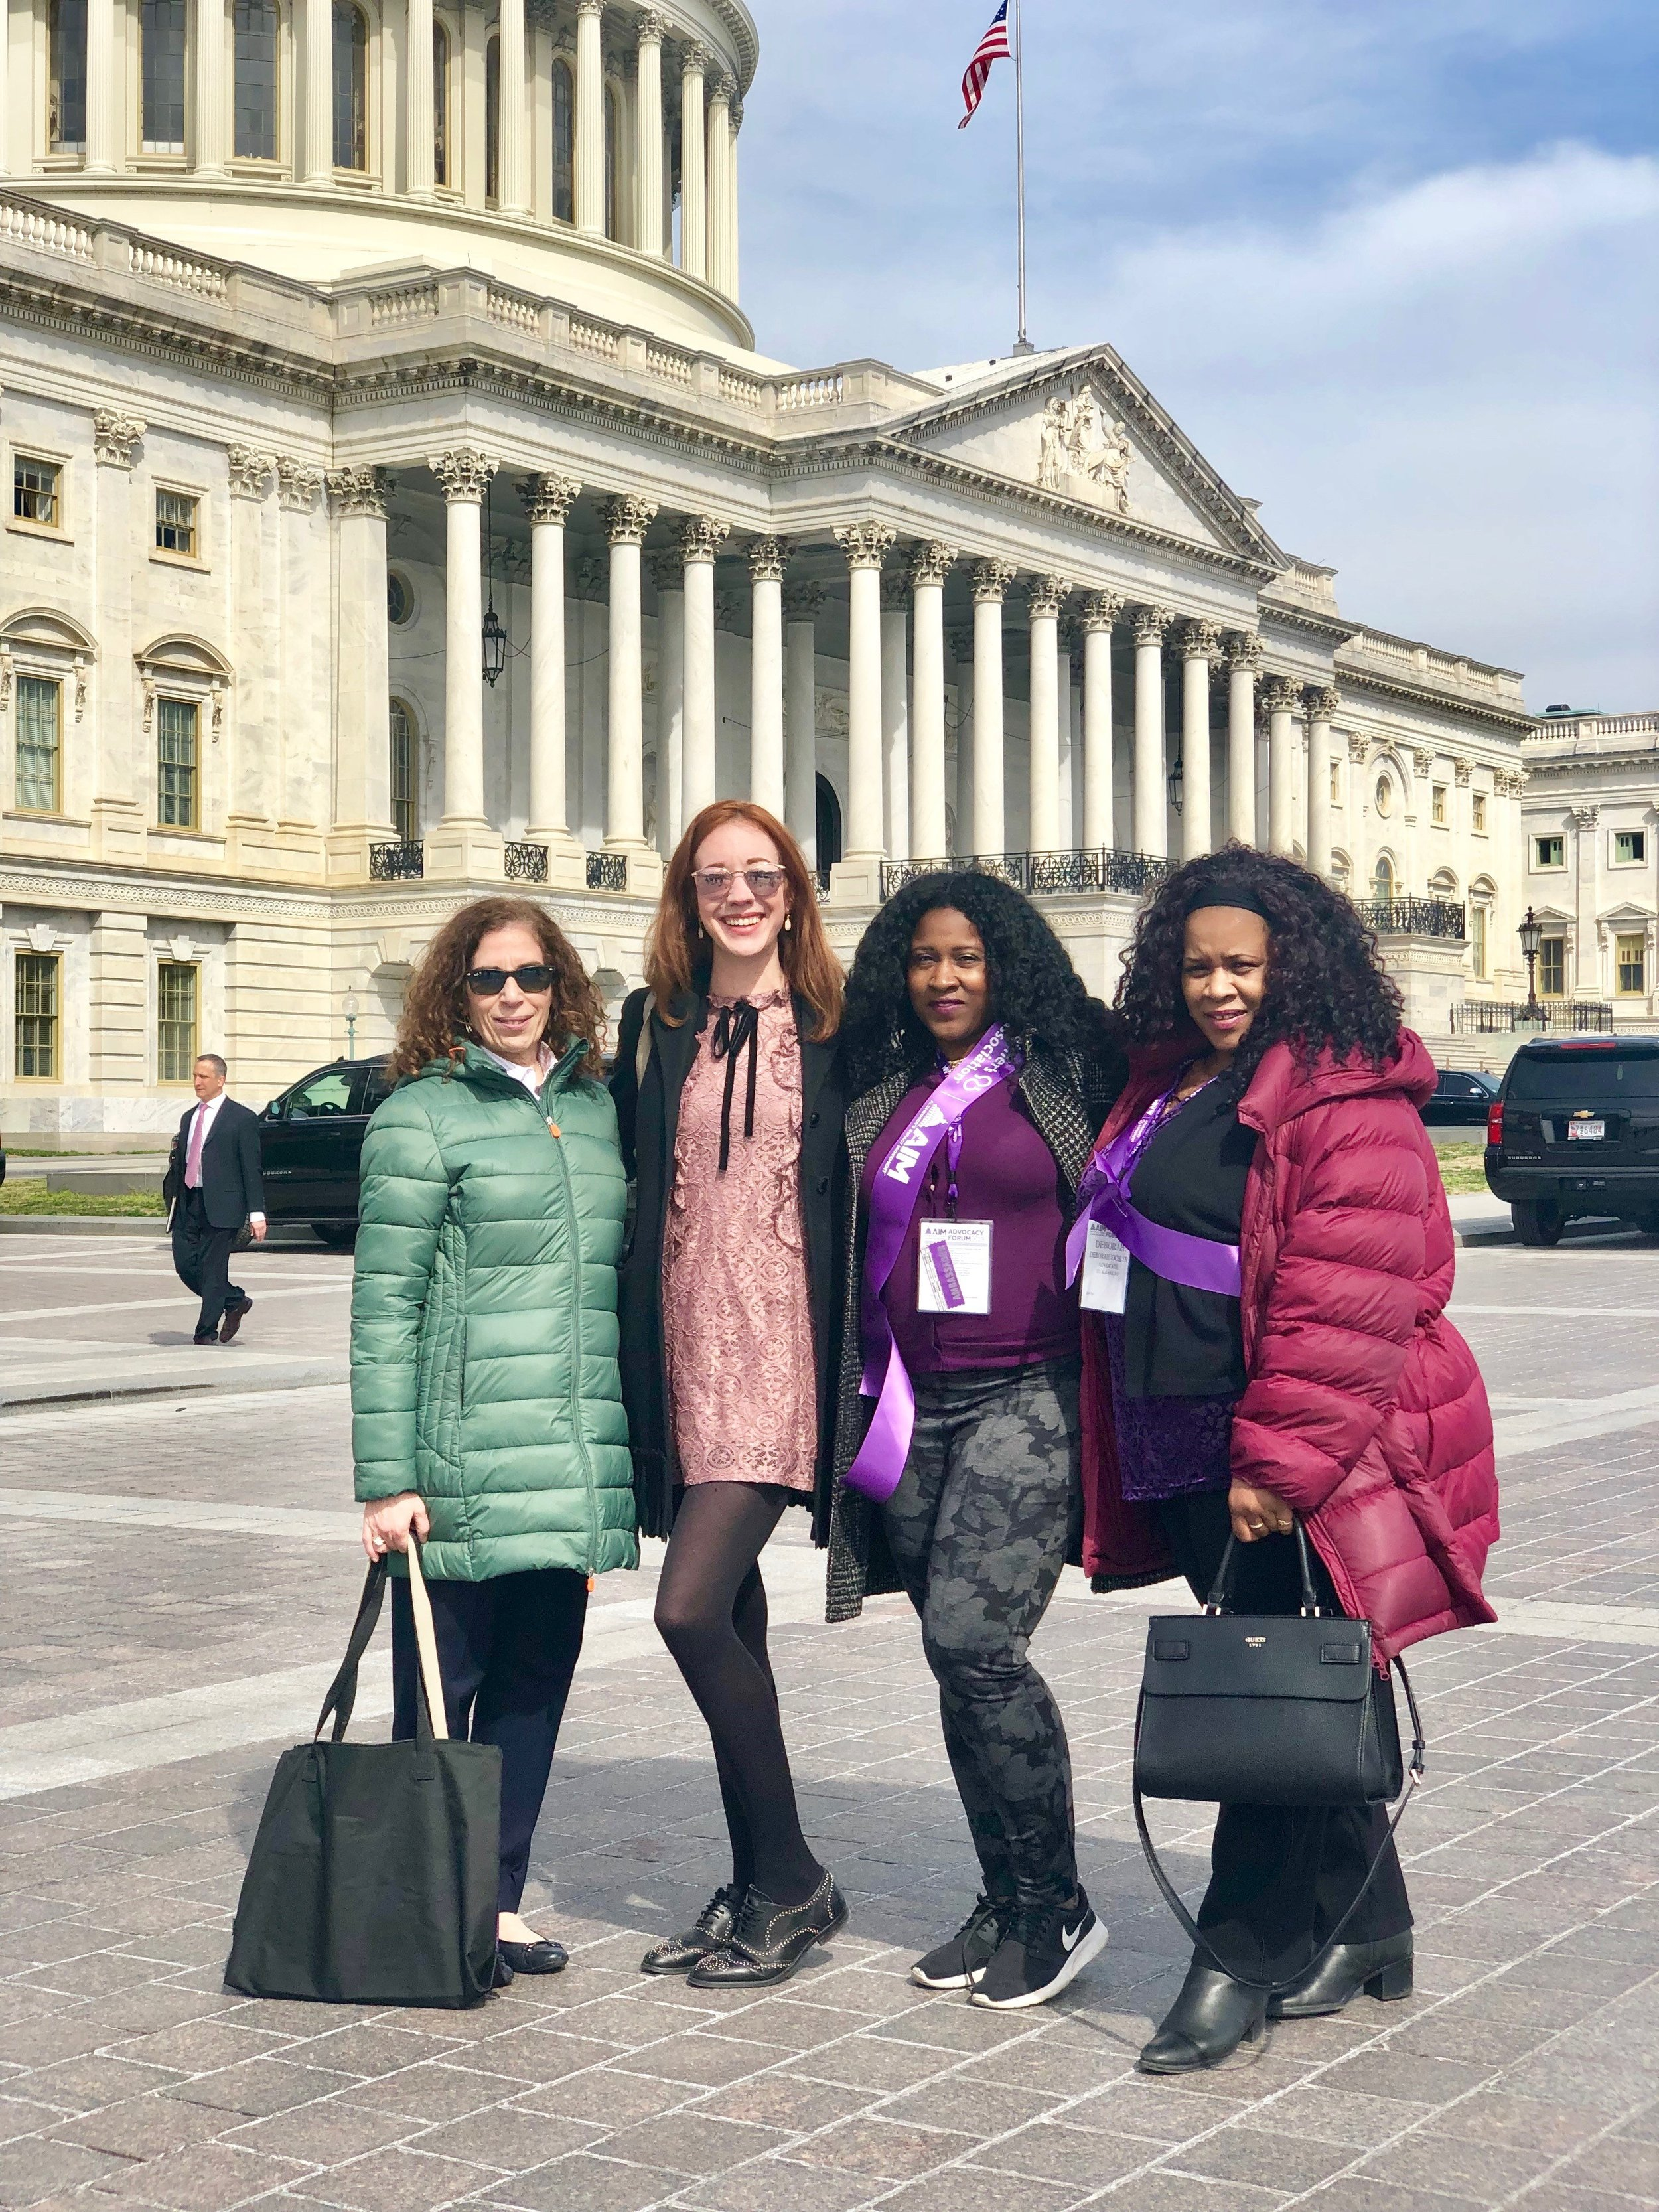 From left to right: Alzheimer's Association, New York City Chapter Advocates Suzanne Campbell, Calleigh Scott, Yulandie Latham and her sister Deborah Latham. Photo courtesy of the Alzheimer's Association.